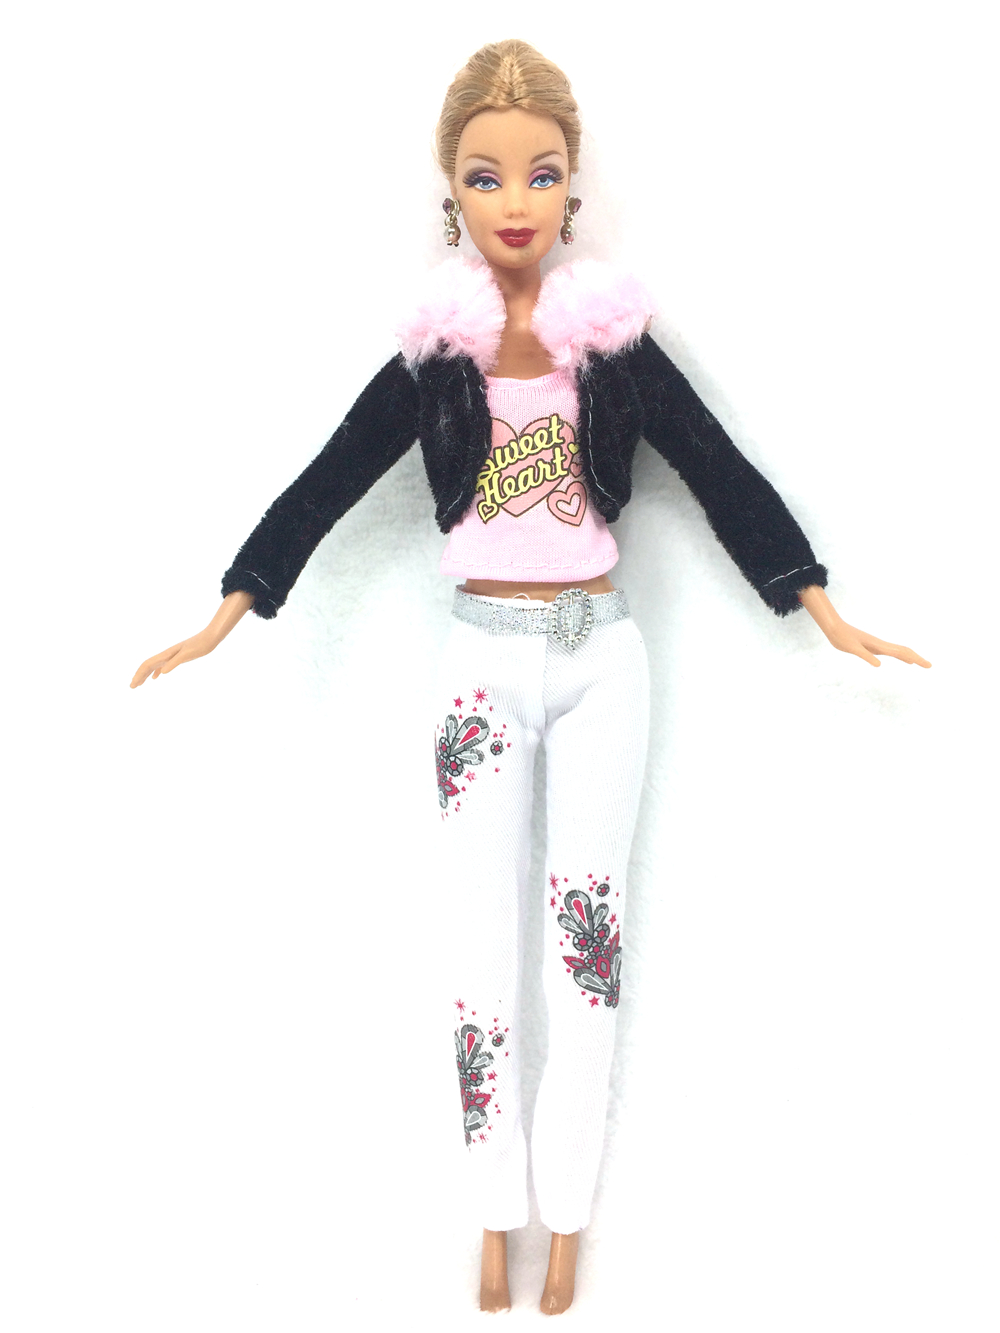 NK 2016 Newest Doll outift Beautiful Handmade Party Clothes Top Fashion  Design For Barbie Noble Doll Best Child Girls Gift 014B. Barbie Doll Designer Promotion Shop for Promotional Barbie Doll